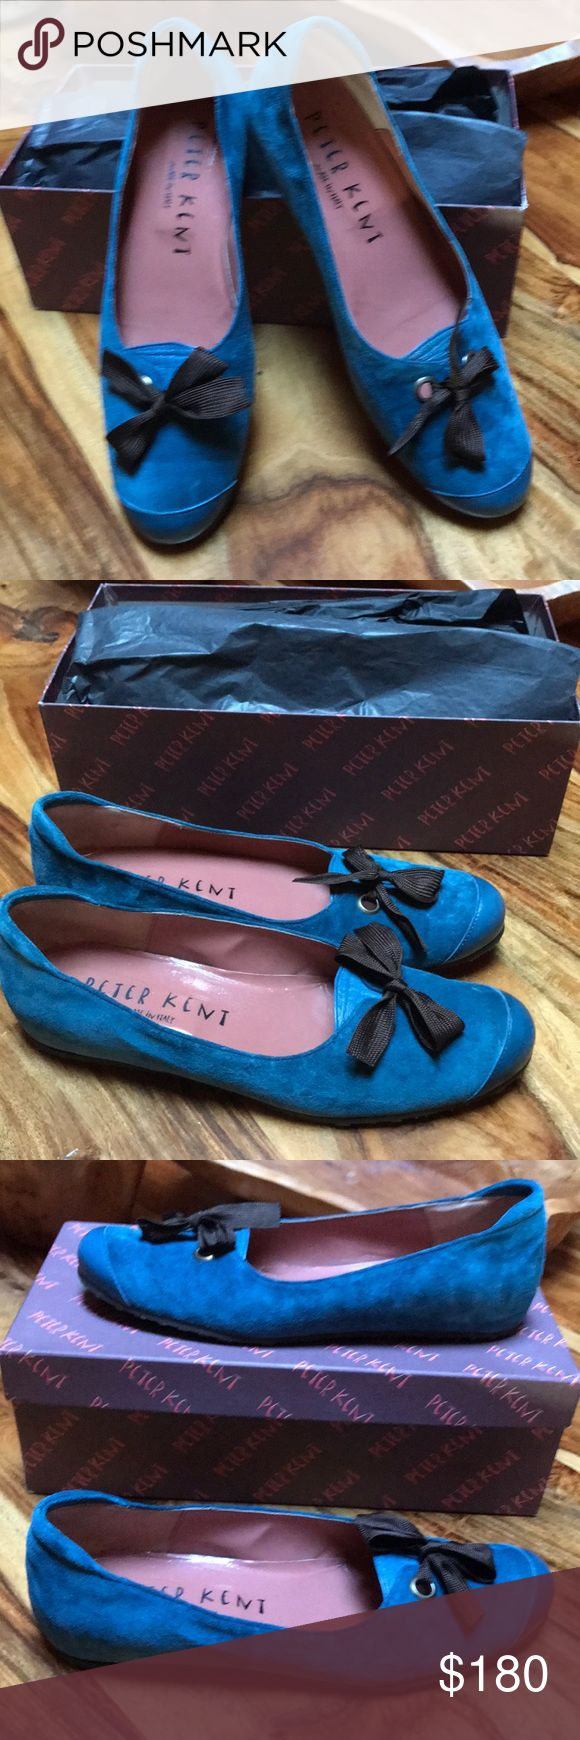 """New Peter Kent Teal w/ brown bows of  fine suede. Made in Italy. Size 39.5 (US 9.5) leather flats/w polished leather on reinforced toe. Grosgrain ribbon of brown w/ grommets. Espadrilles/wedge feature: a raised internal heel of 1/2"""". Peter Kent Shoes Wedges"""